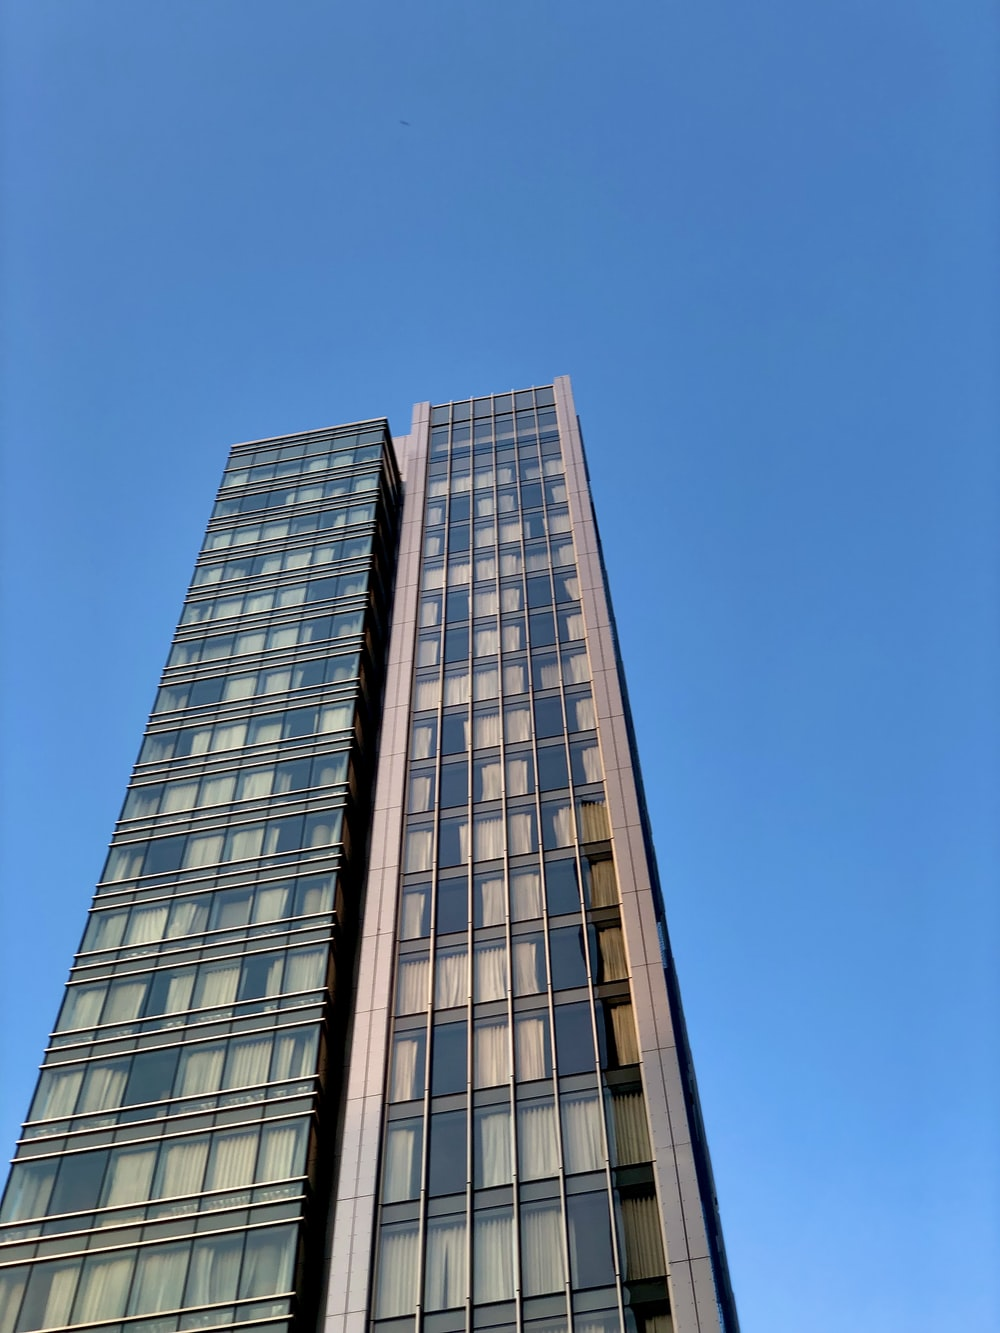 brown and white concrete building under blue sky during daytime